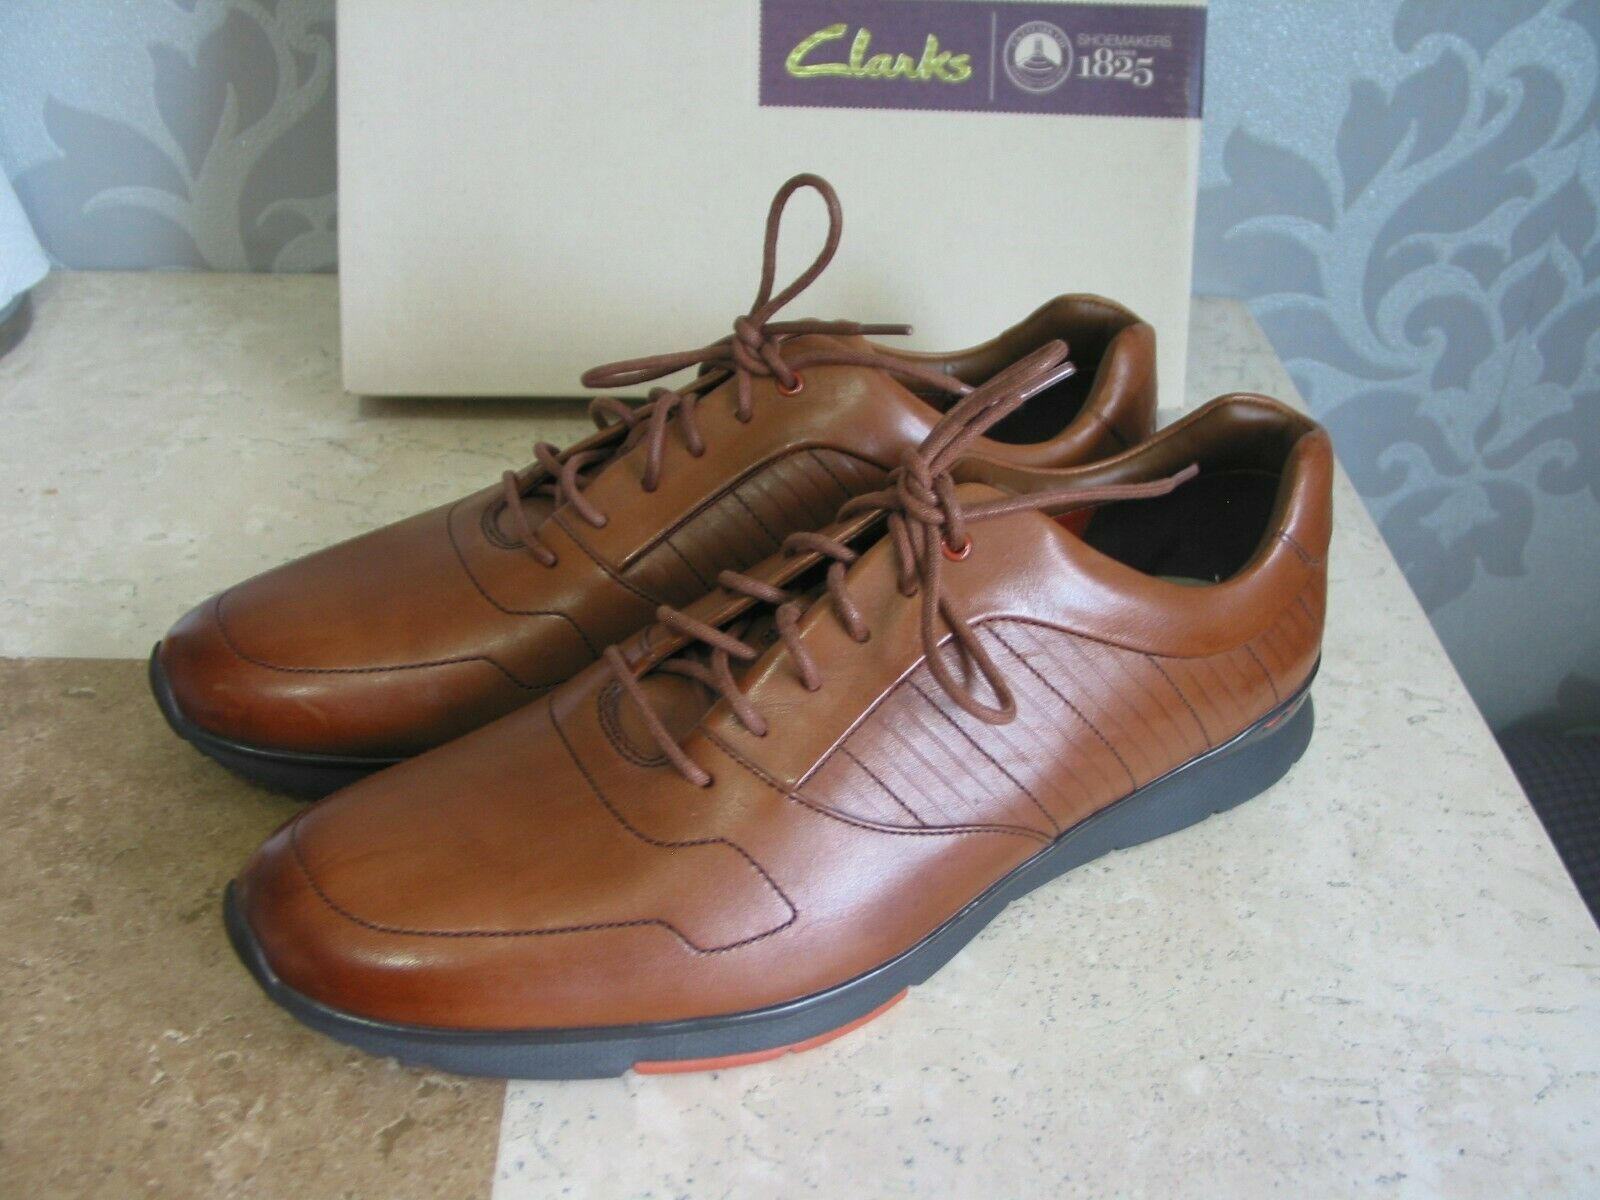 NEW MENS CLARKS TYNAMO RACE TAN BROWN LEATHER CASUAL SHOES UK SIZE 9 & 10.5 & 12